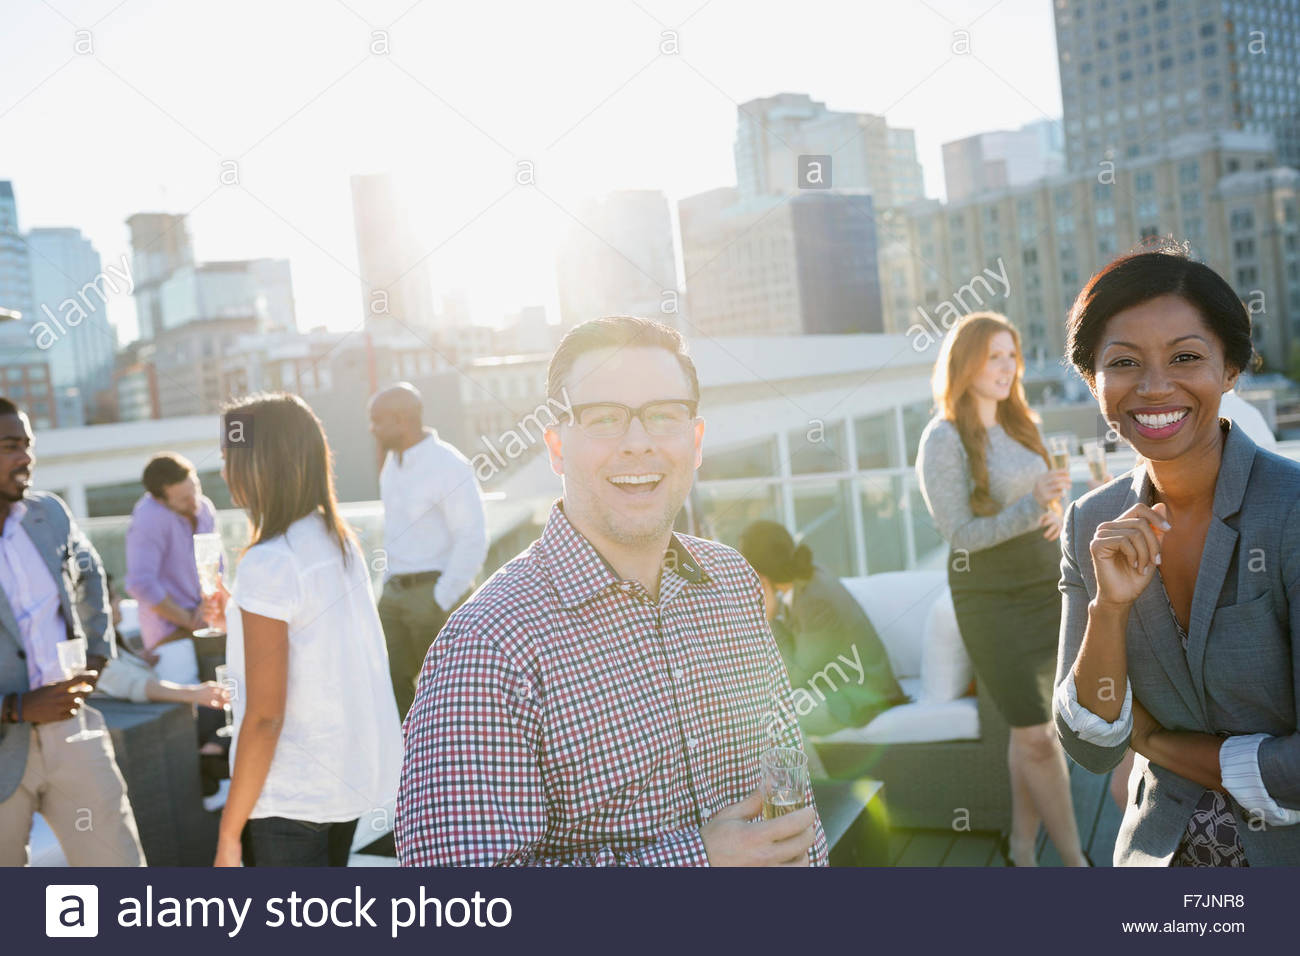 Portrait of smiling business people on sunny urban rooftop Photo Stock